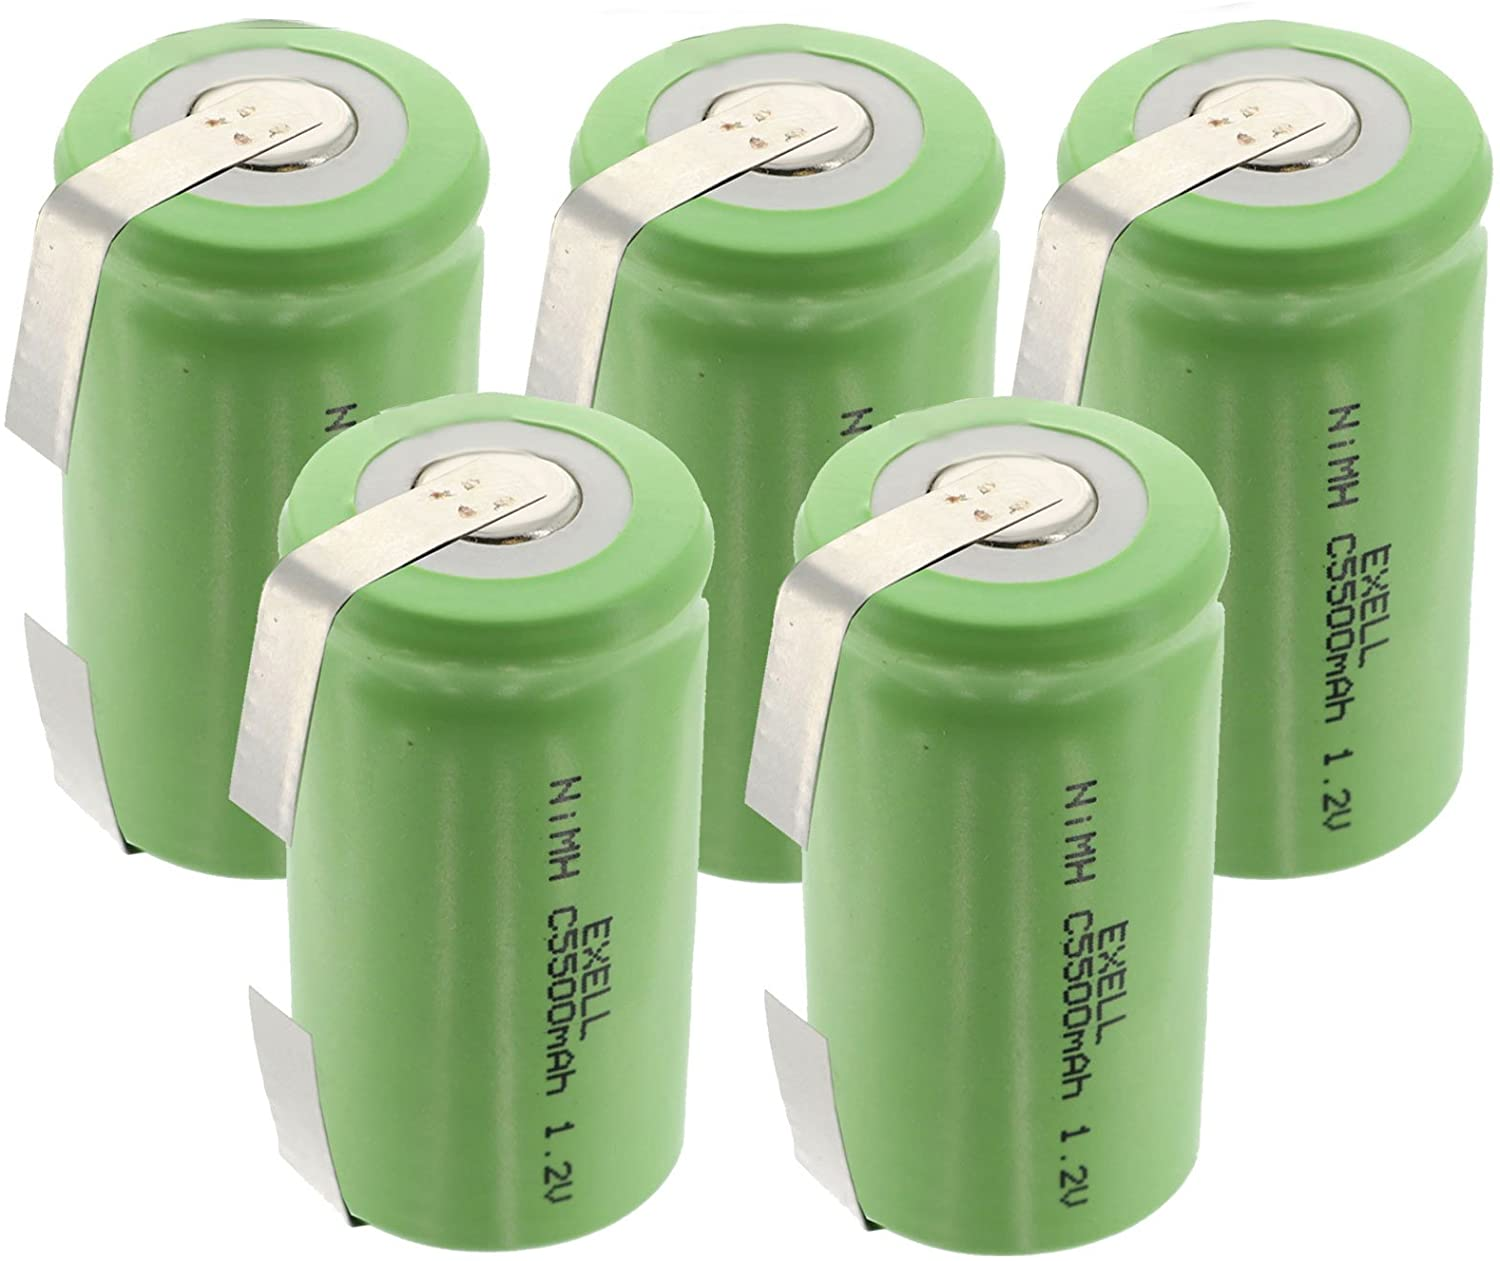 5x Exell 1.2V 5000mAh NiMH C Size Rechargeable Batteries w/Tabs use with electric razors toothbrushes high power static applications (Telecoms UPS and Smart grid) electric tools electric mopeds